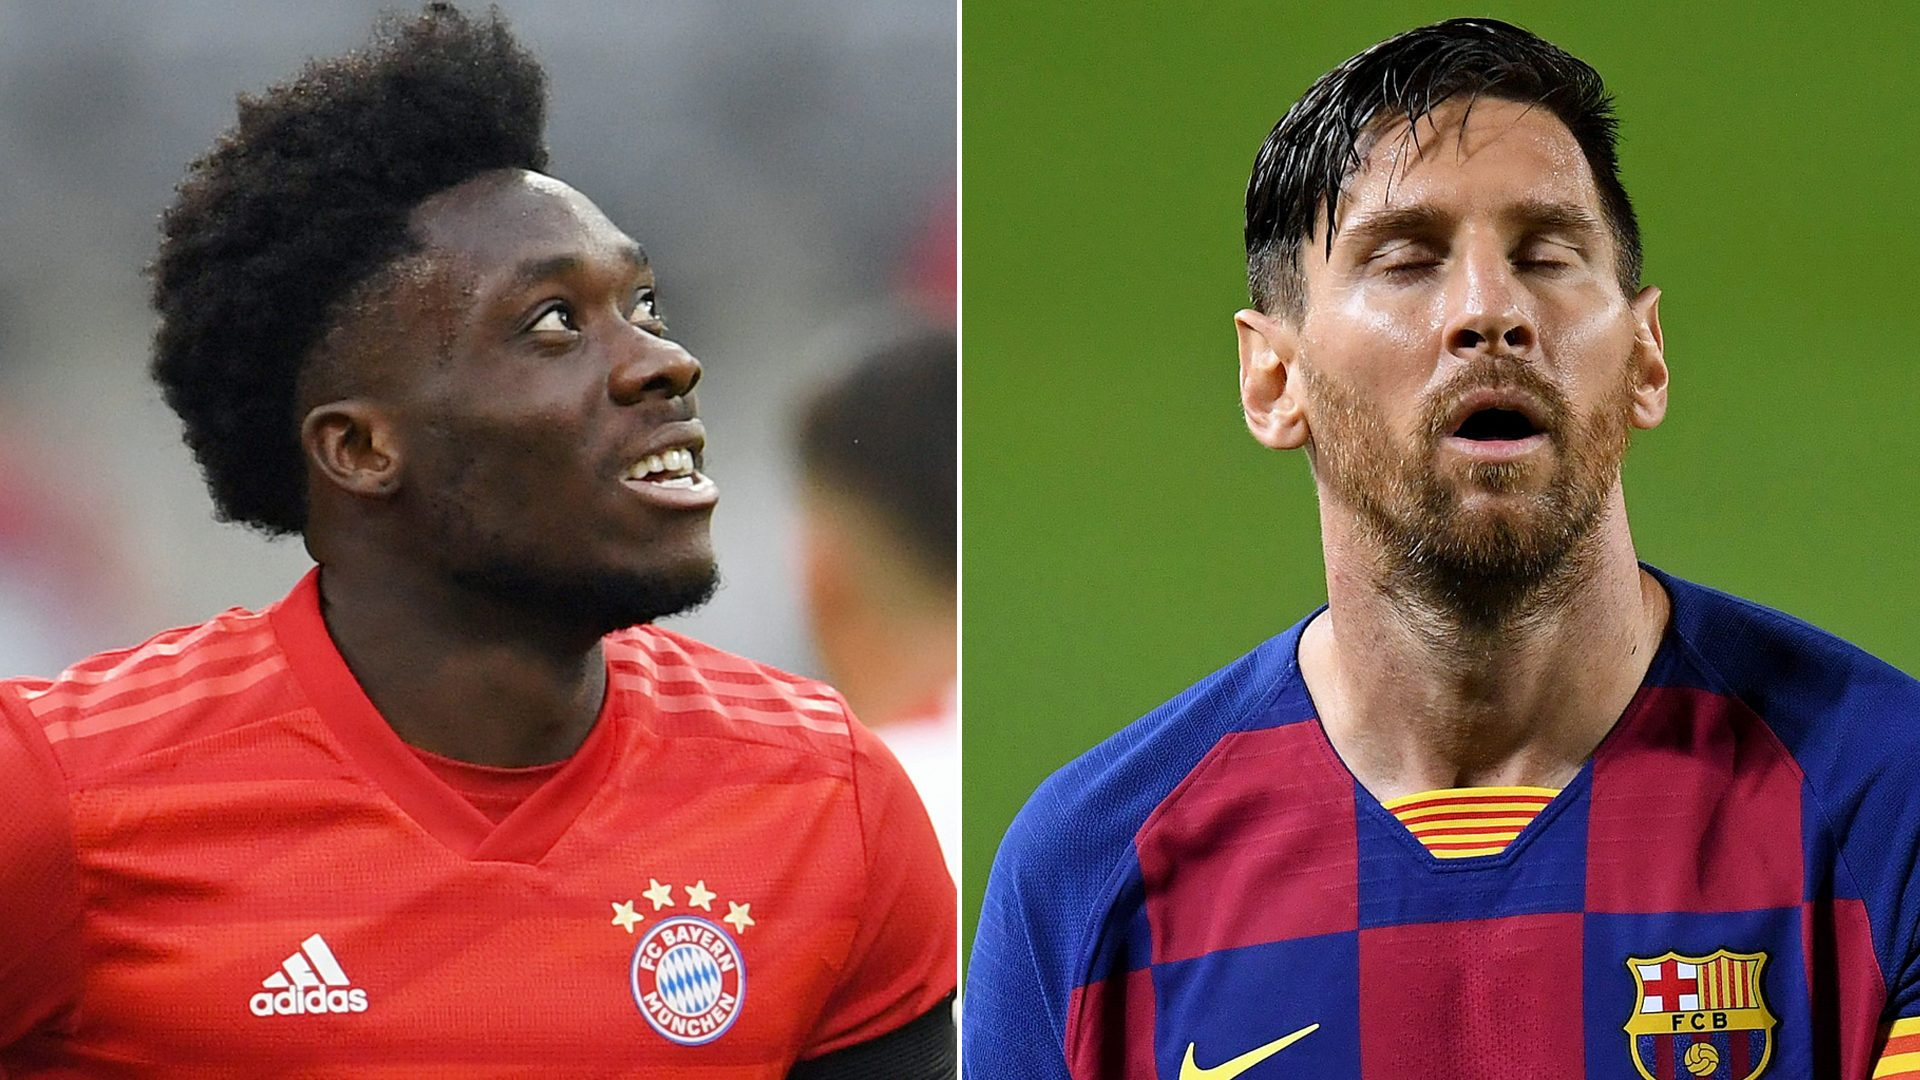 Bundesliga Alphonso Davies Will Take Care Of Lionel Messi Bayern Munich Ceo Karl Heinz Rummenigge